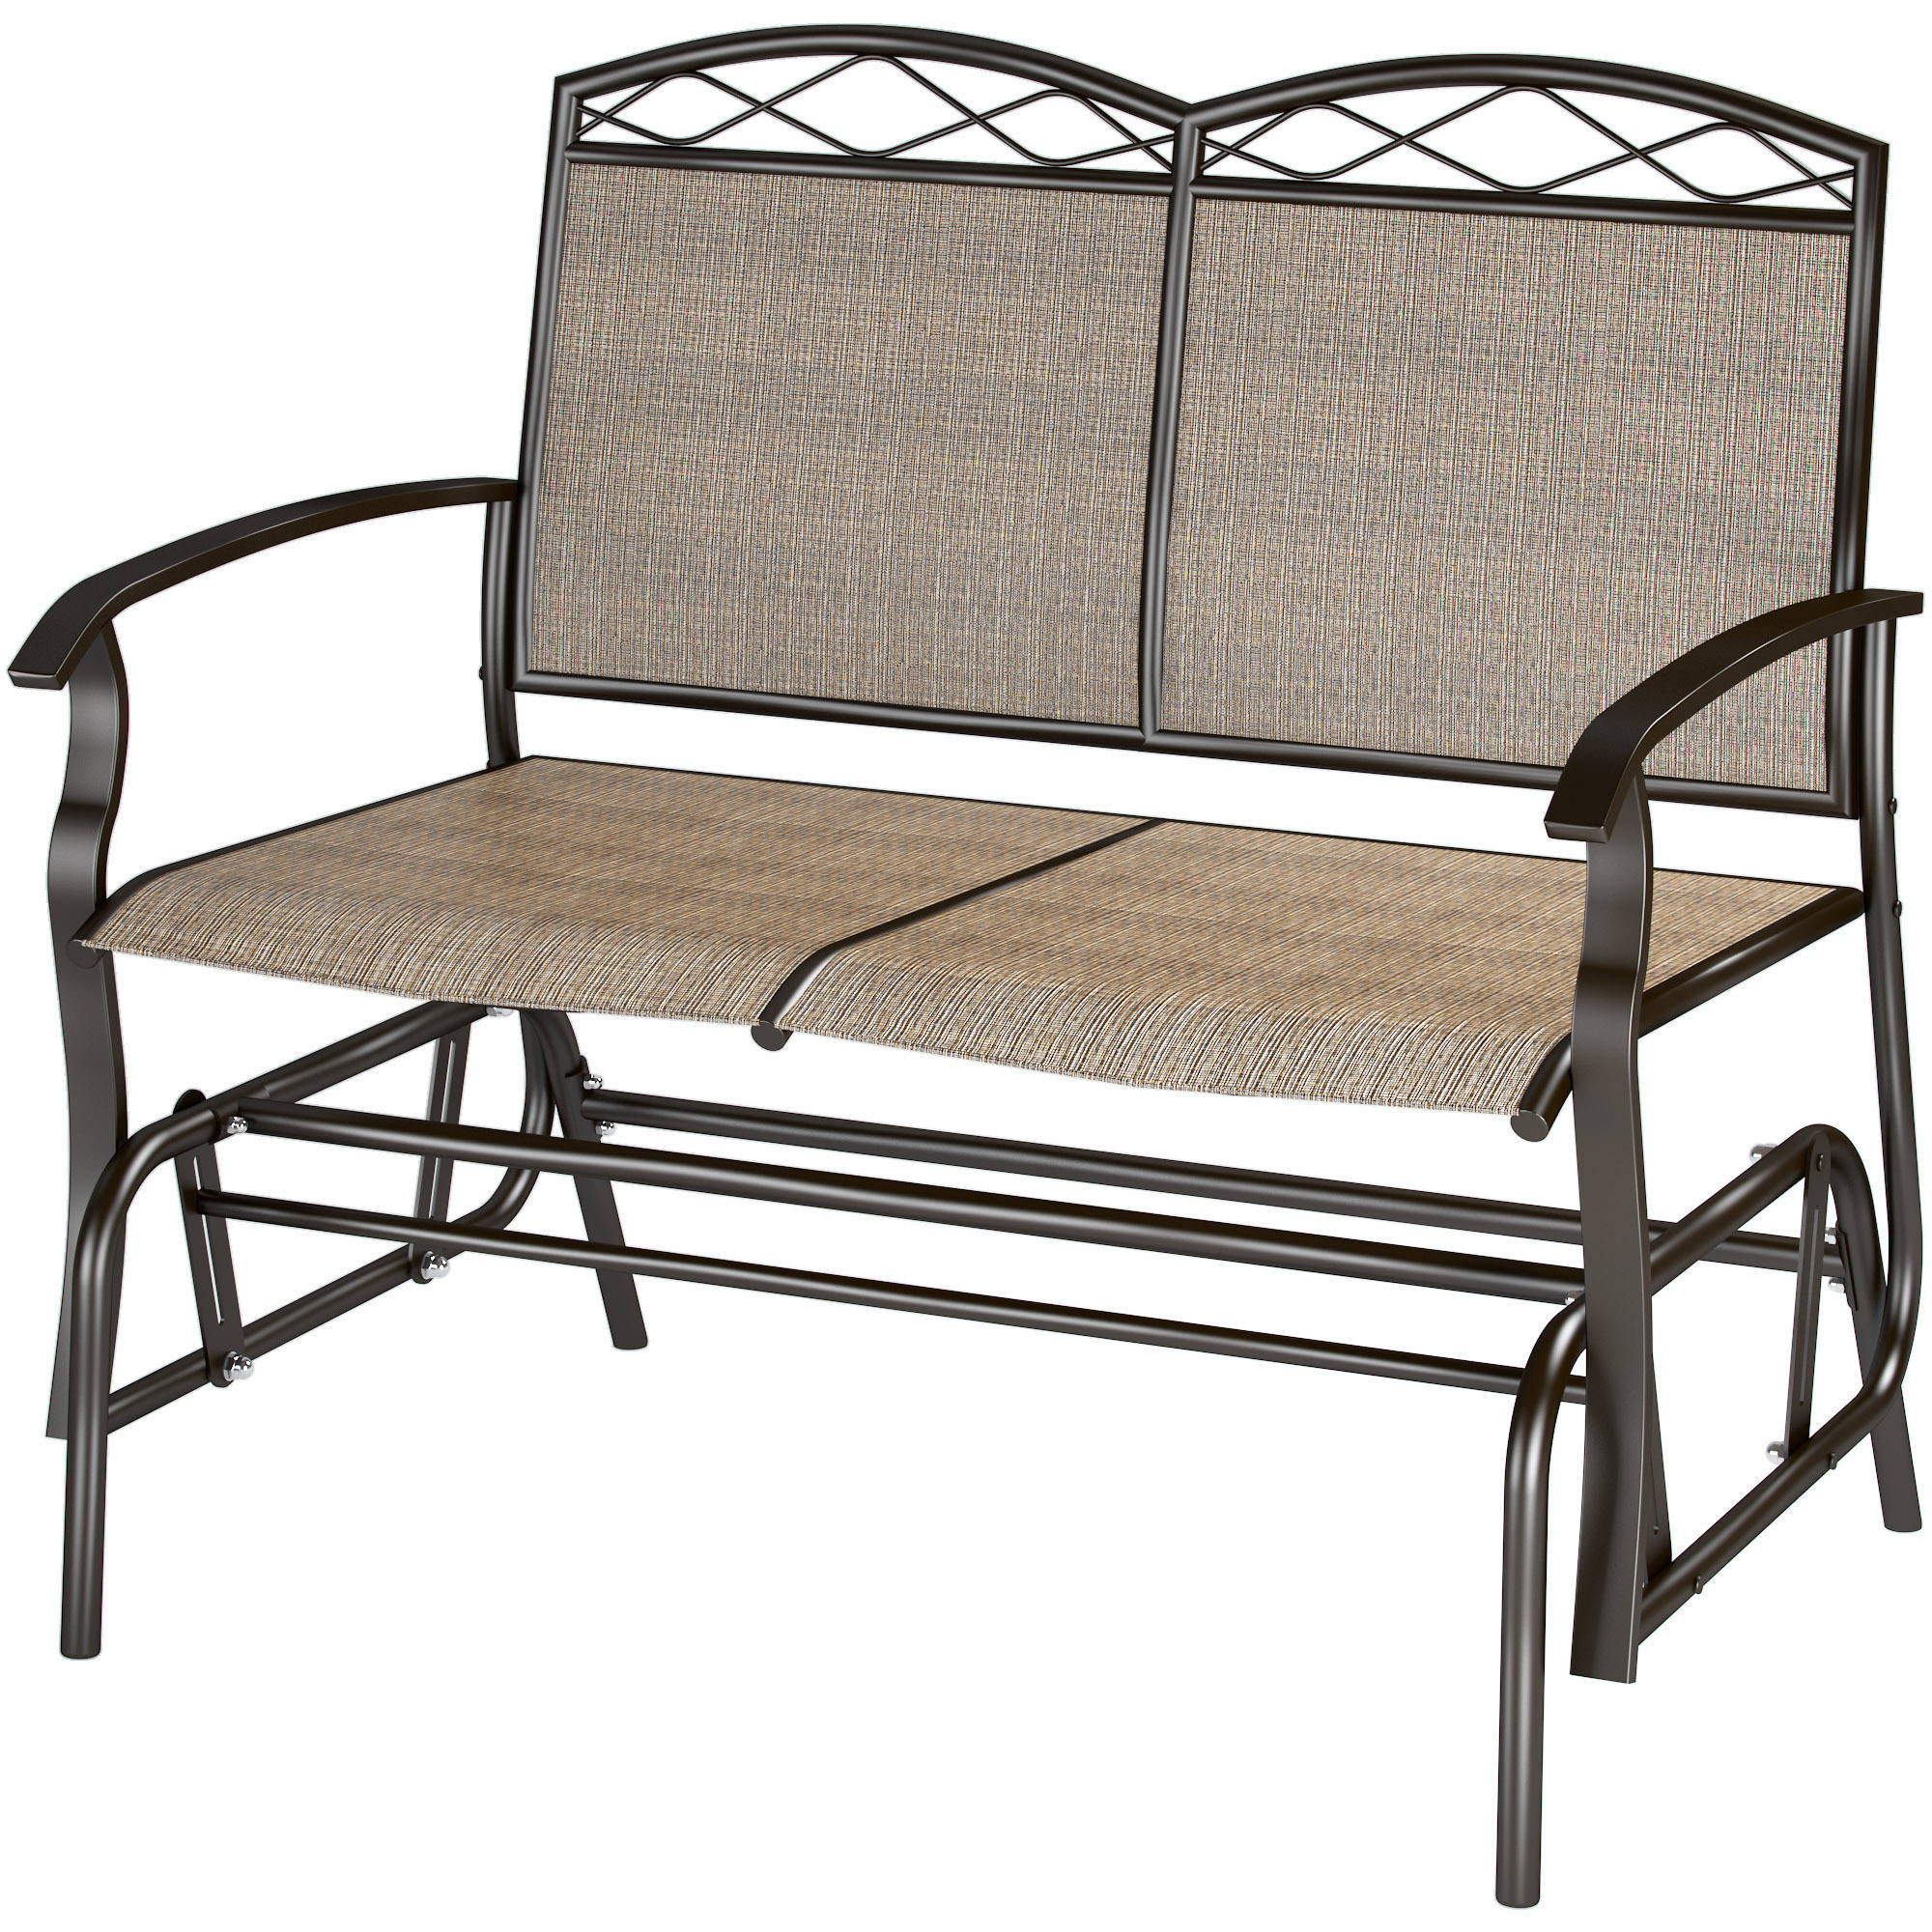 Corliving Speckled Brown Patio Double Glider – Walmart With Regard To Speckled Glider Benches (View 5 of 25)